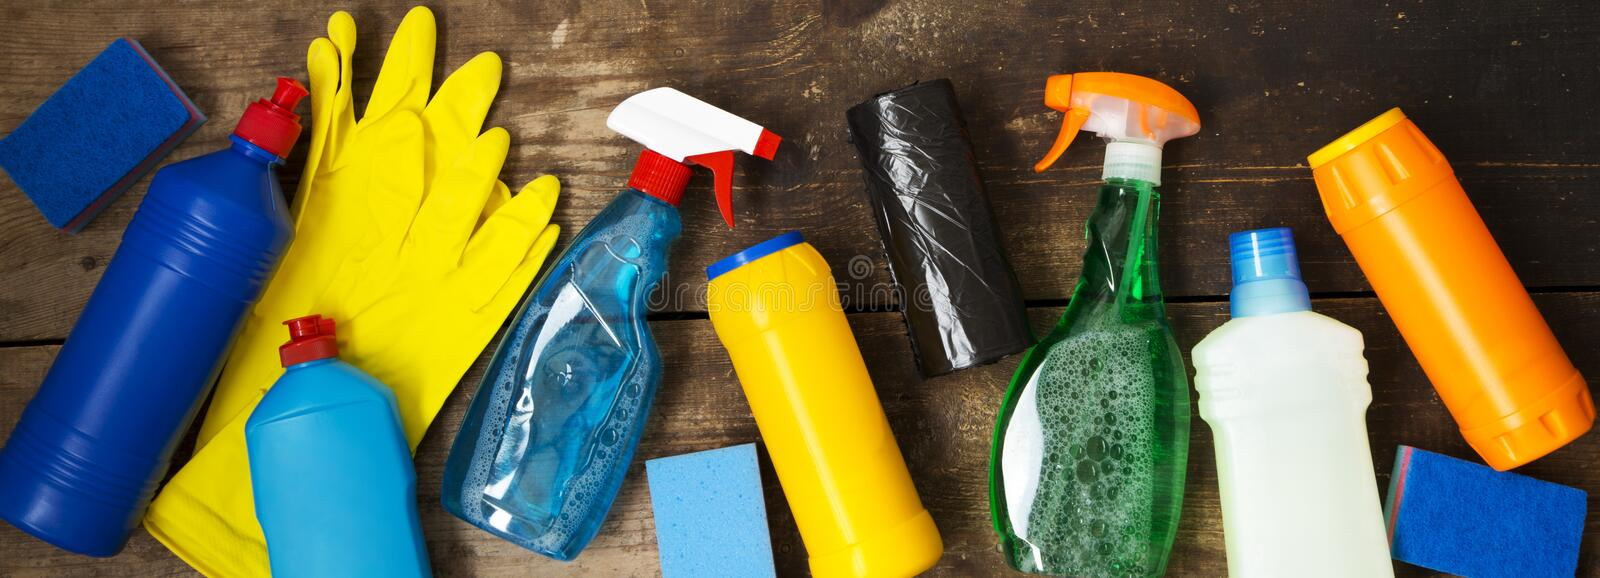 Cleaning products on wooden surface. House cleaning concept. Overhead view. From above. Flat lay stock photo